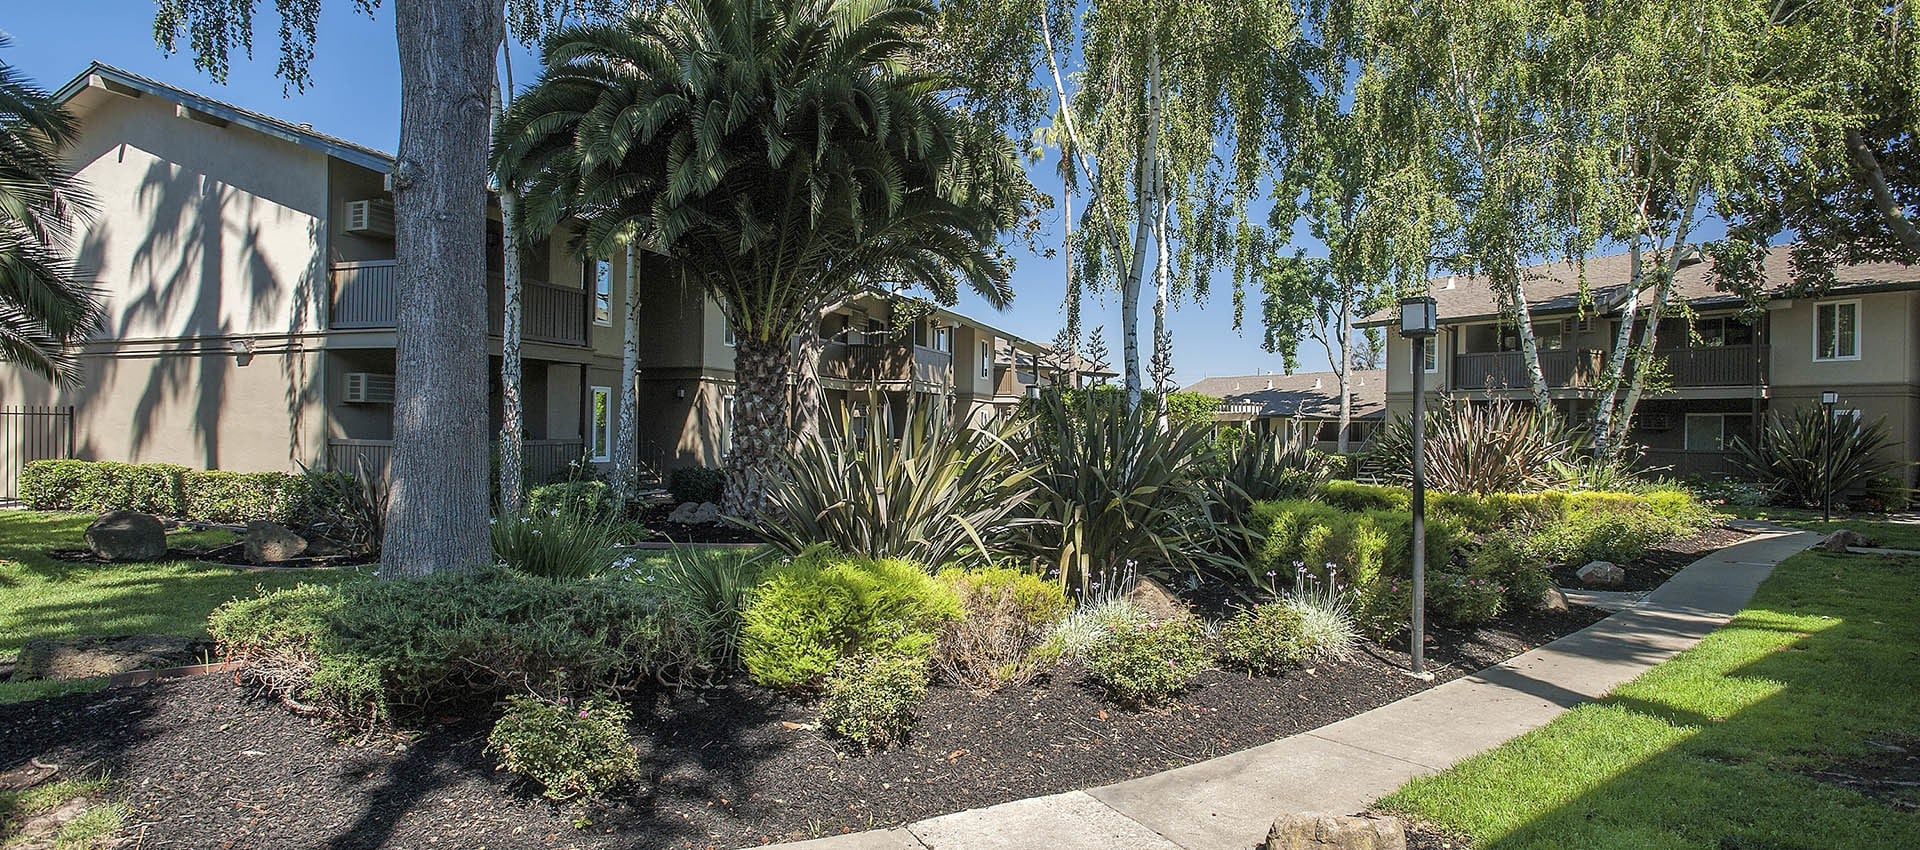 Walkway at Villa Palms Apartment Homes in Livermore, California